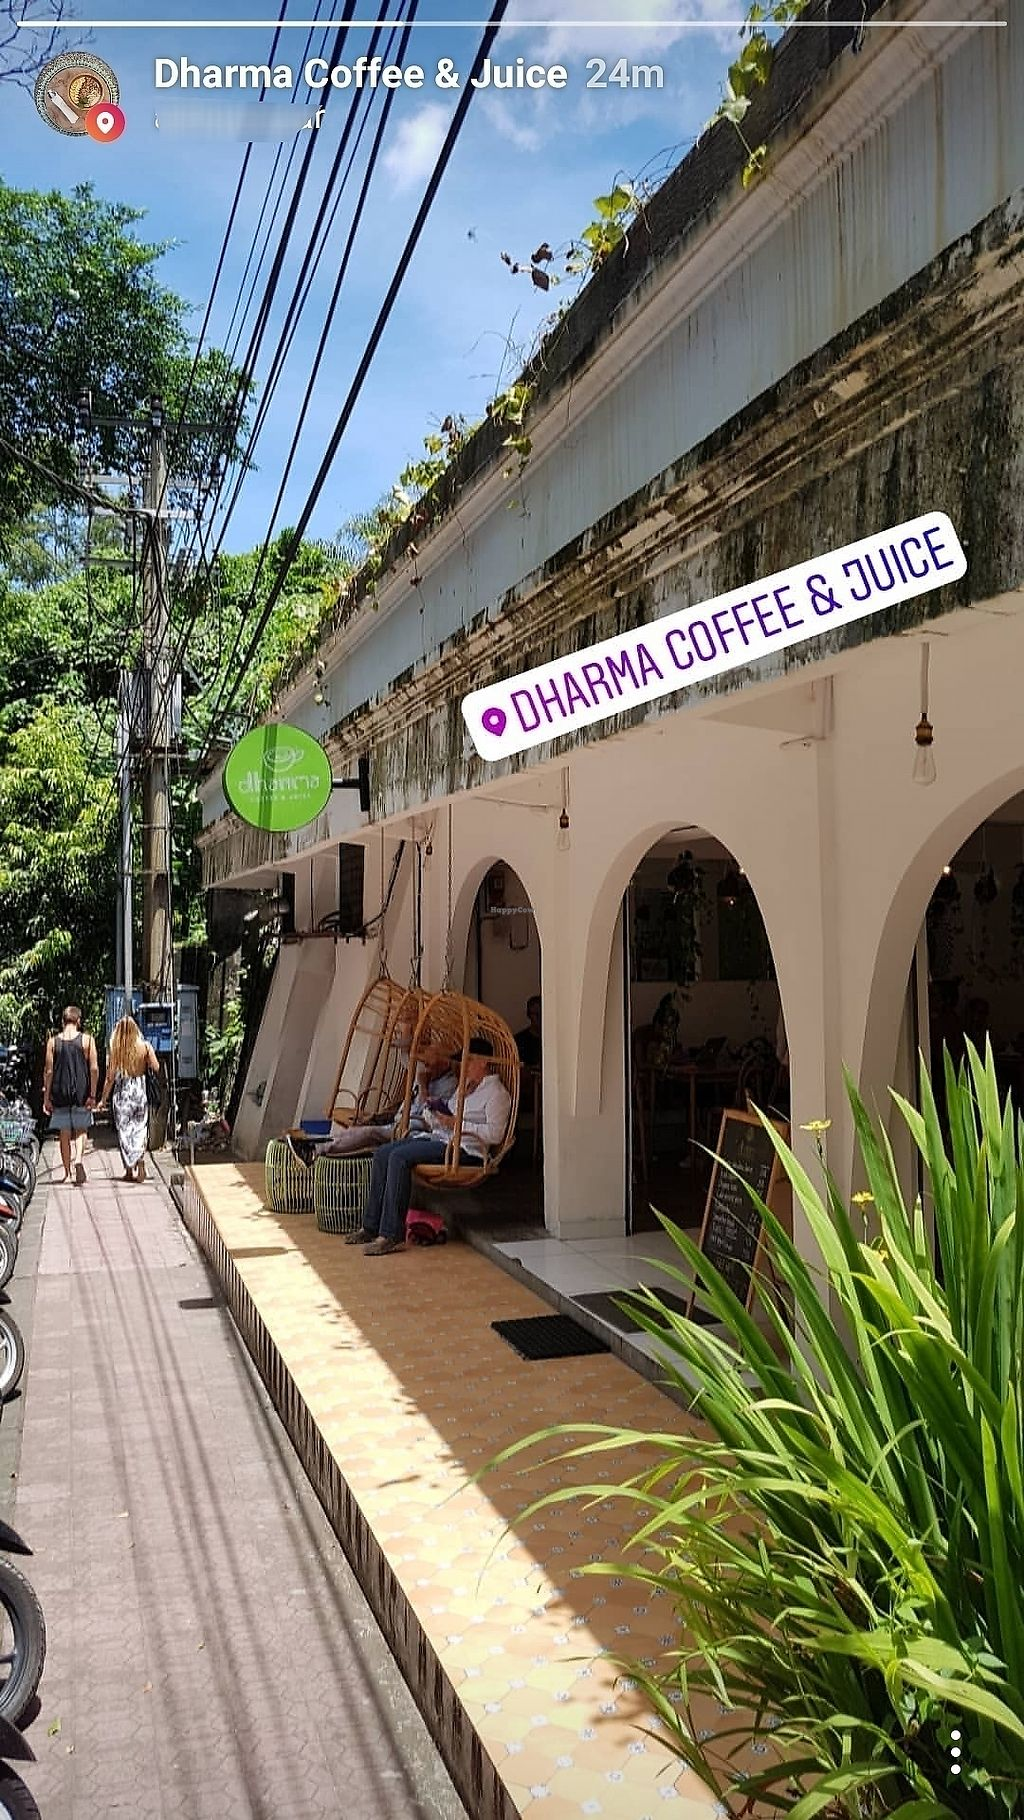 """Photo of Dharma Coffee & Juice  by <a href=""""/members/profile/TorkisNasoetion"""">TorkisNasoetion</a> <br/>Dharma Coffee  <br/> March 31, 2018  - <a href='/contact/abuse/image/115176/378591'>Report</a>"""